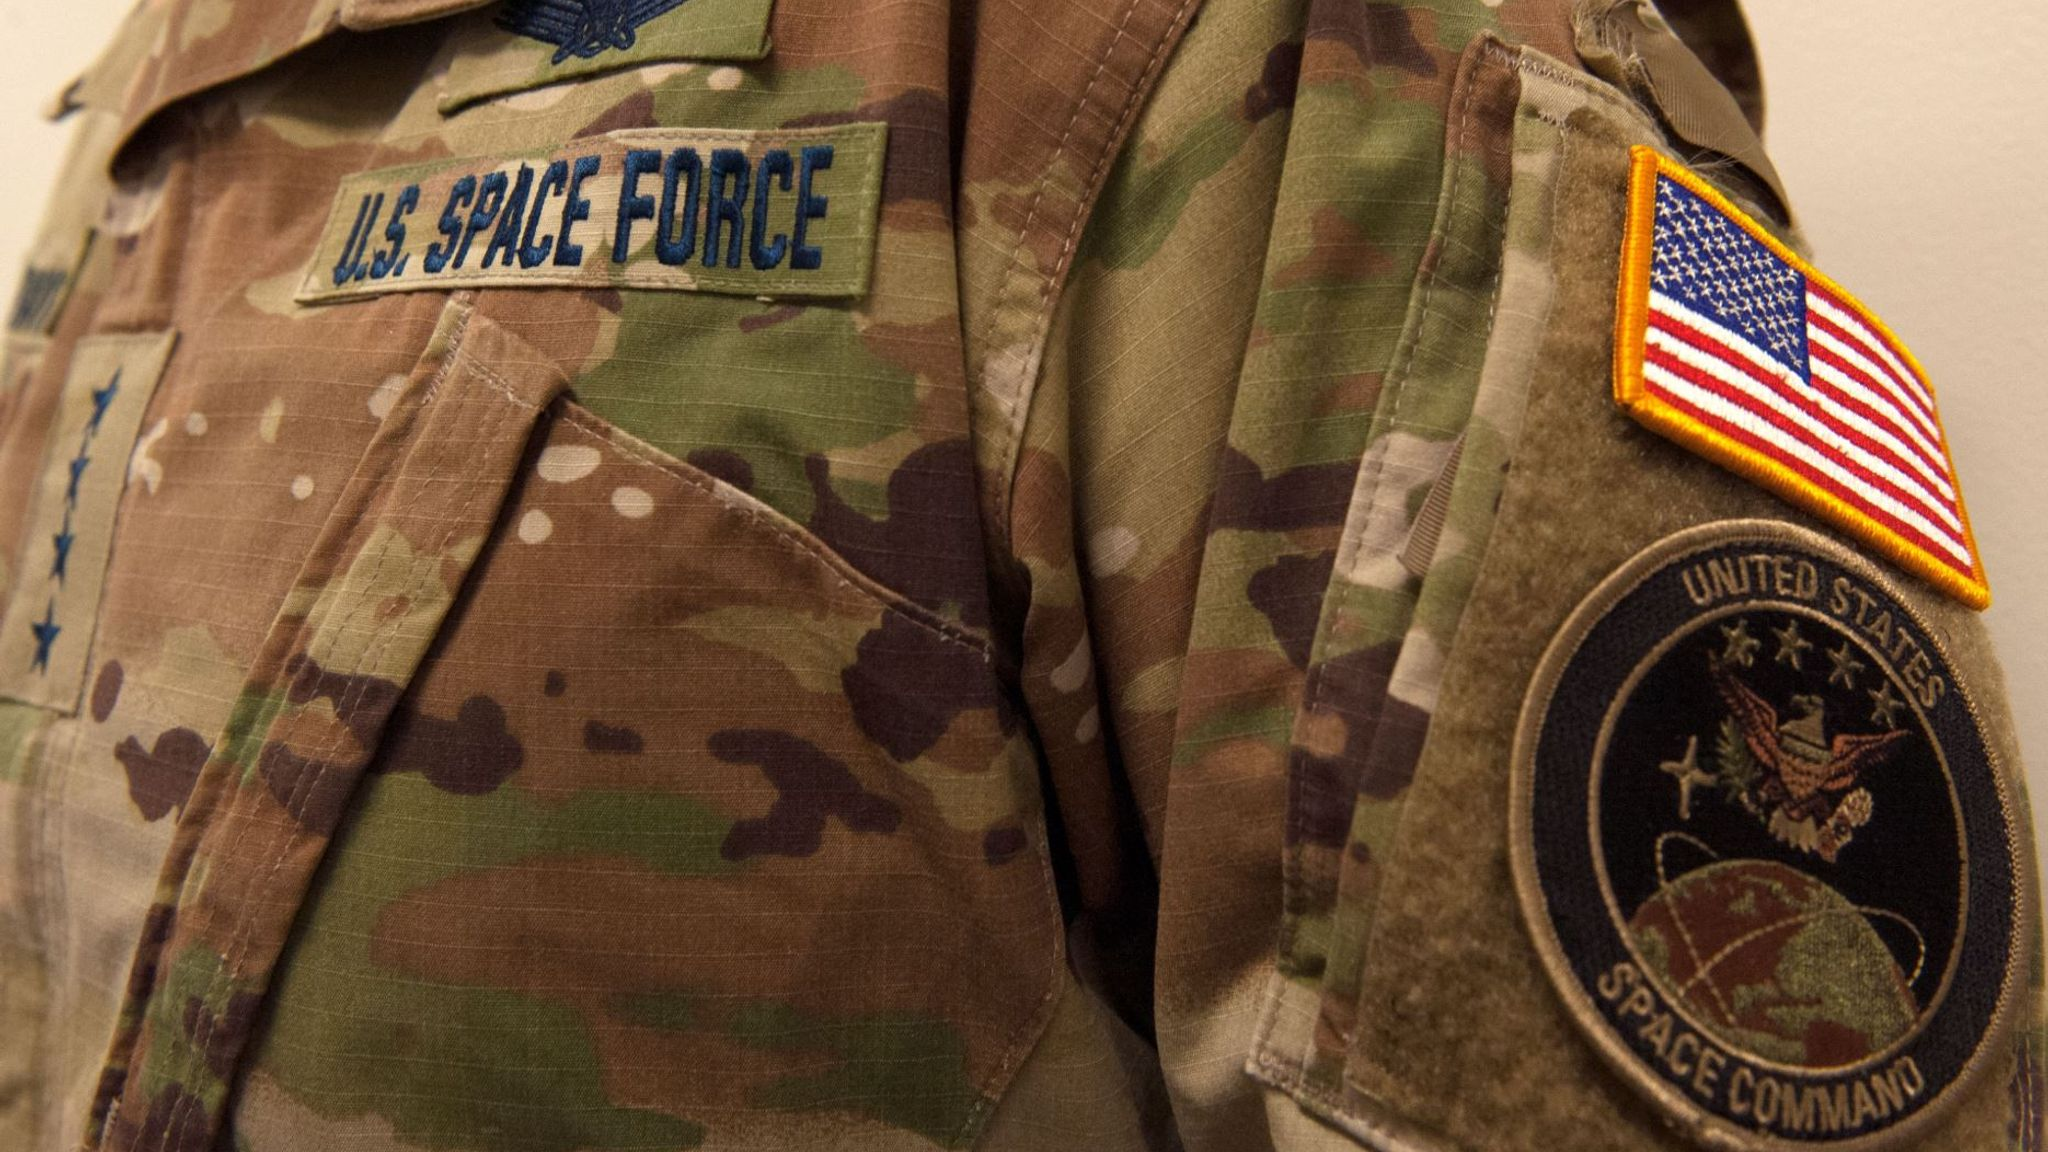 US Space Force mocked over new camouflage uniform